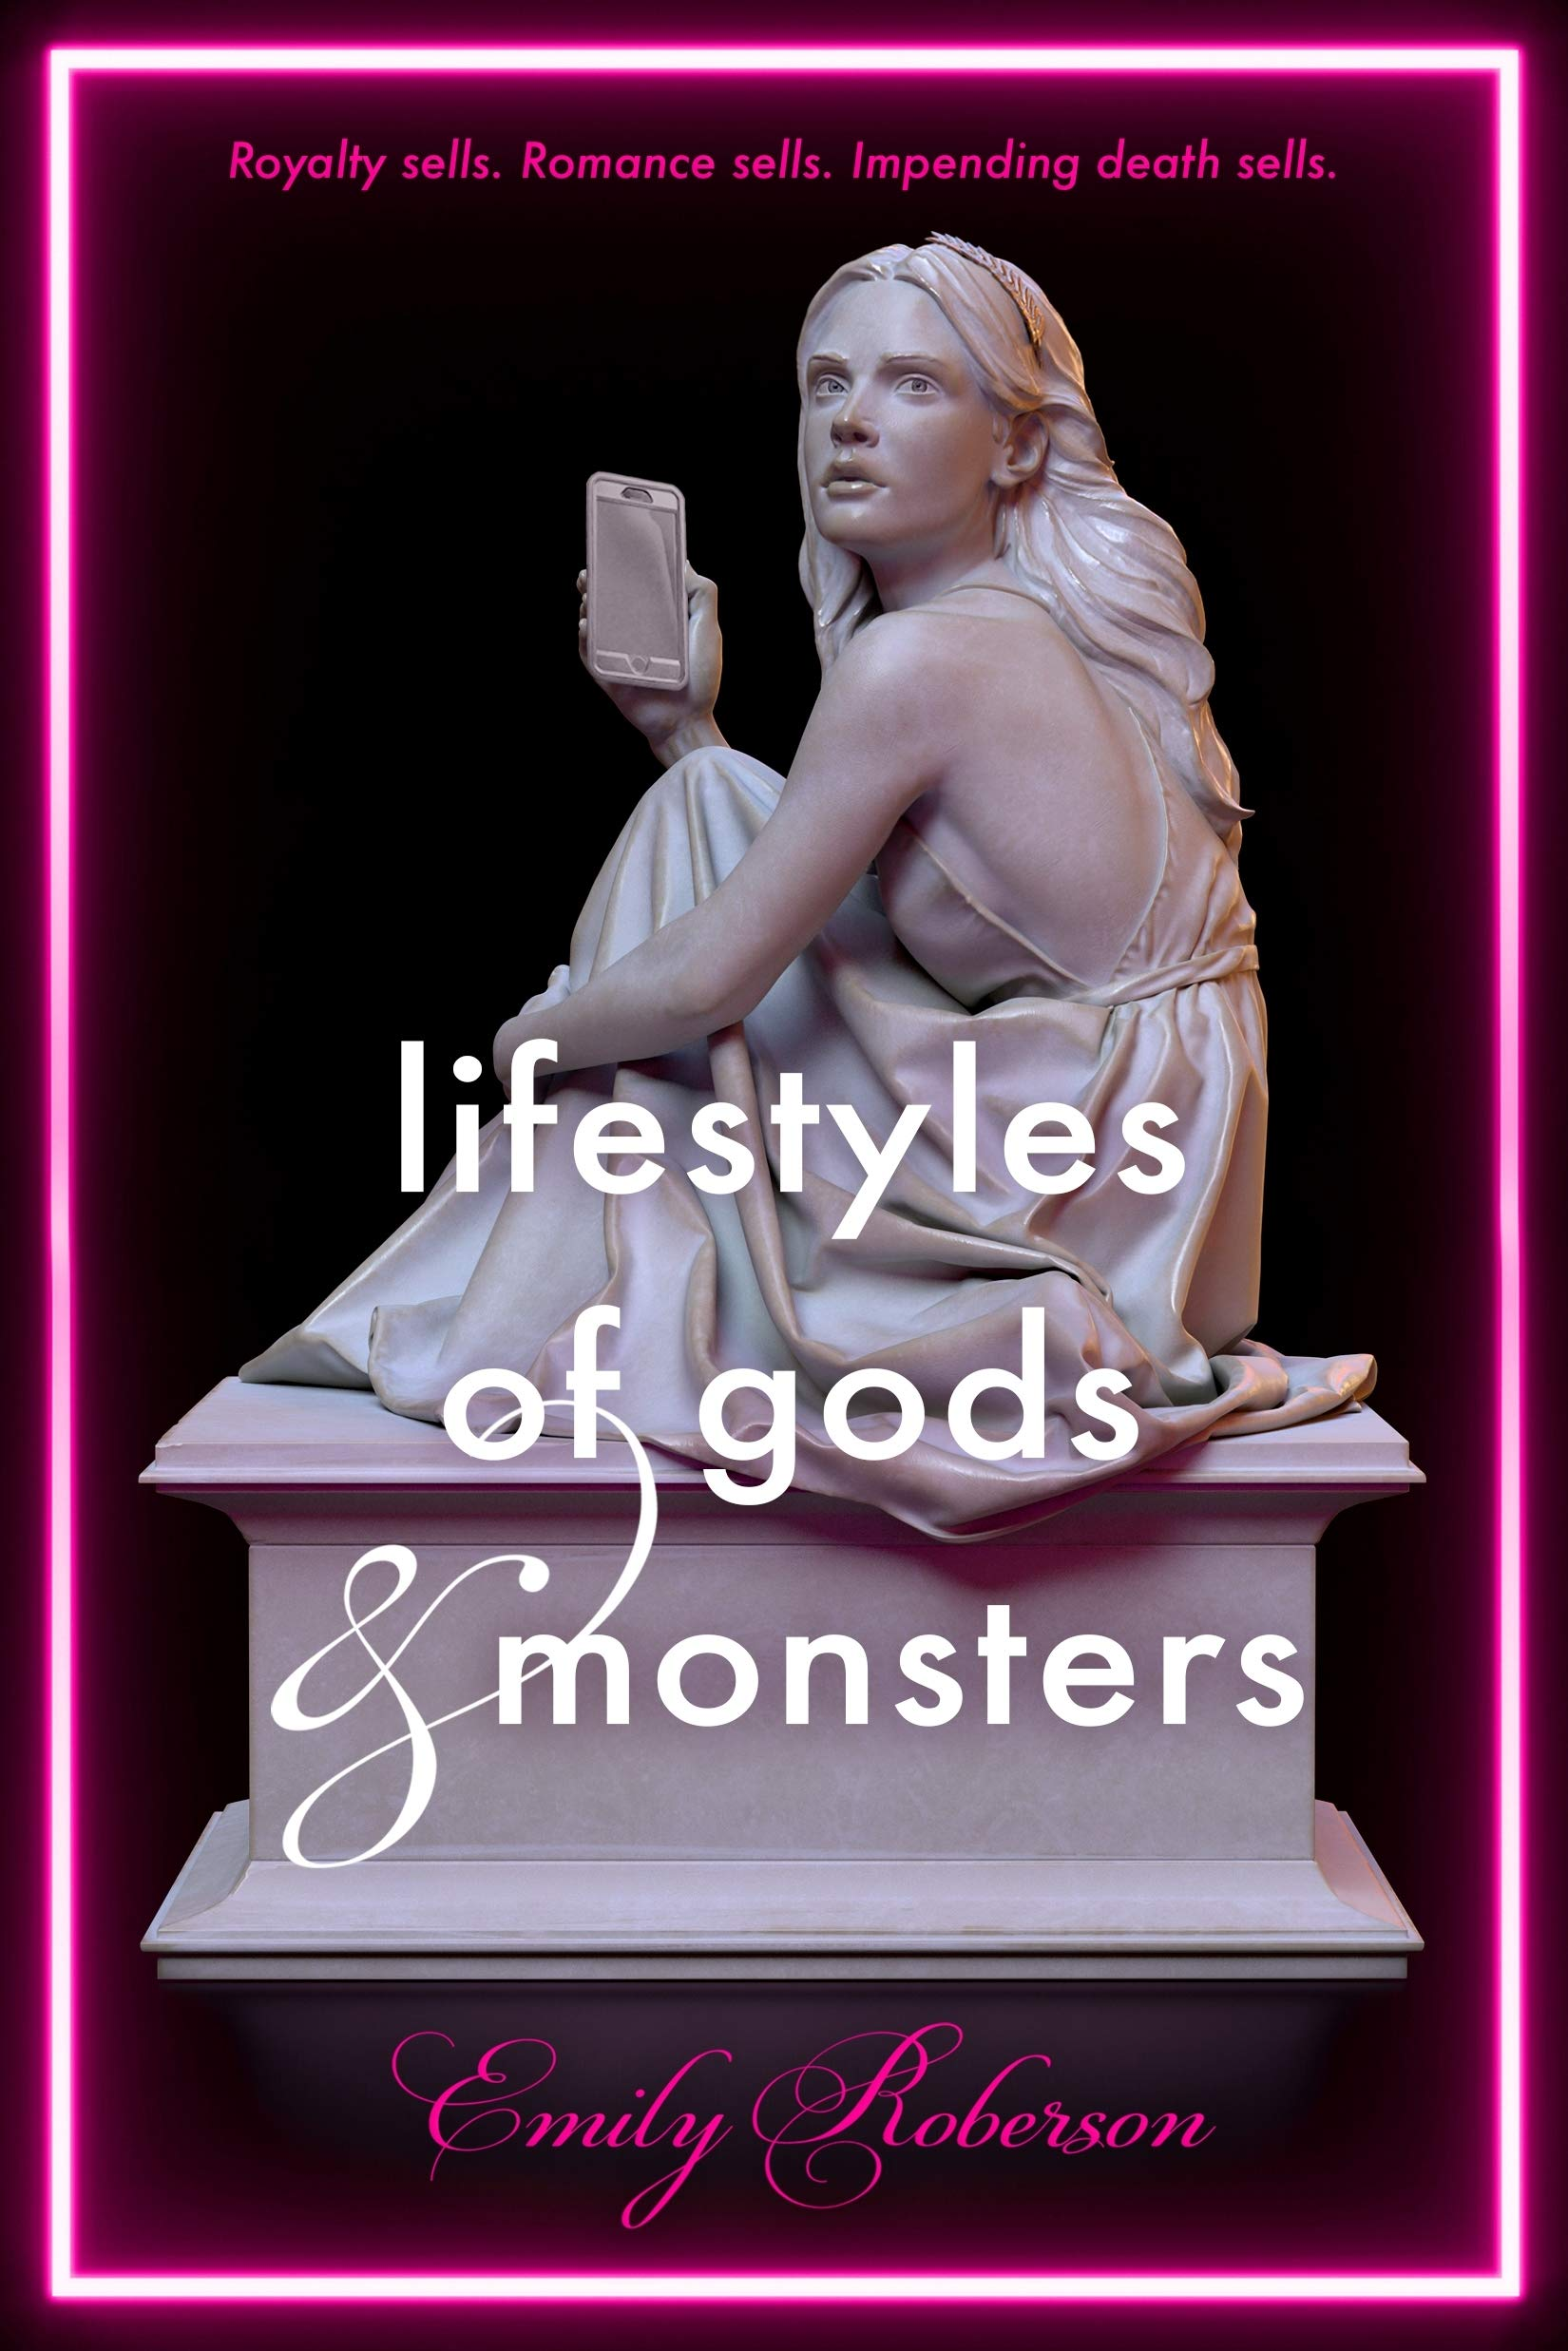 Amazon.com: Lifestyles of Gods and Monsters (9780374310622 ...